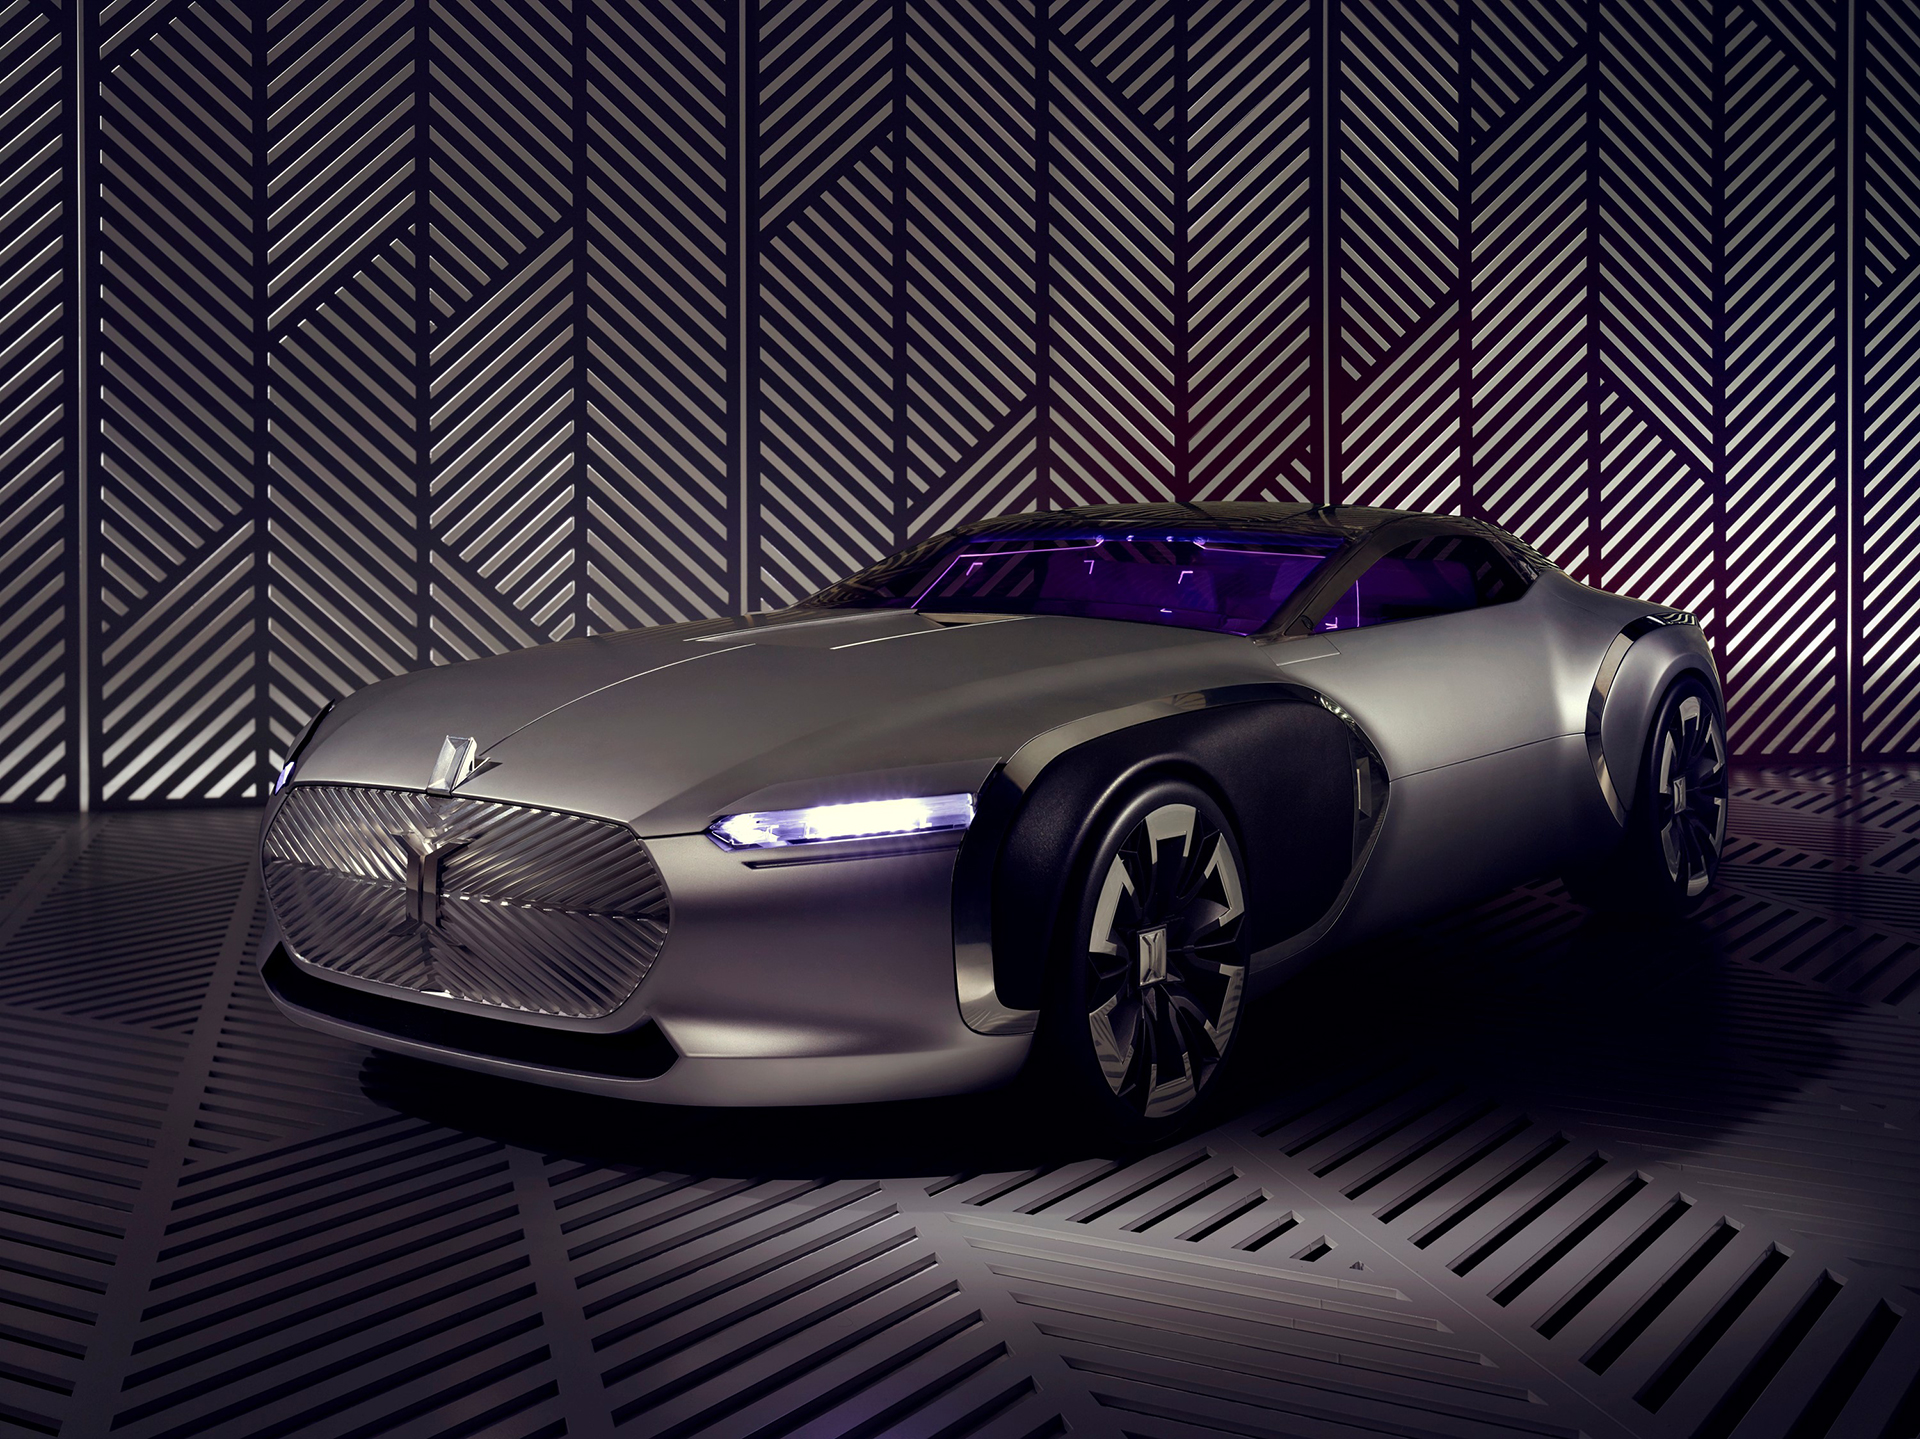 Coupé Corbusier Concept - 2015 - profil avant / front side-face - Design Groupe Renault